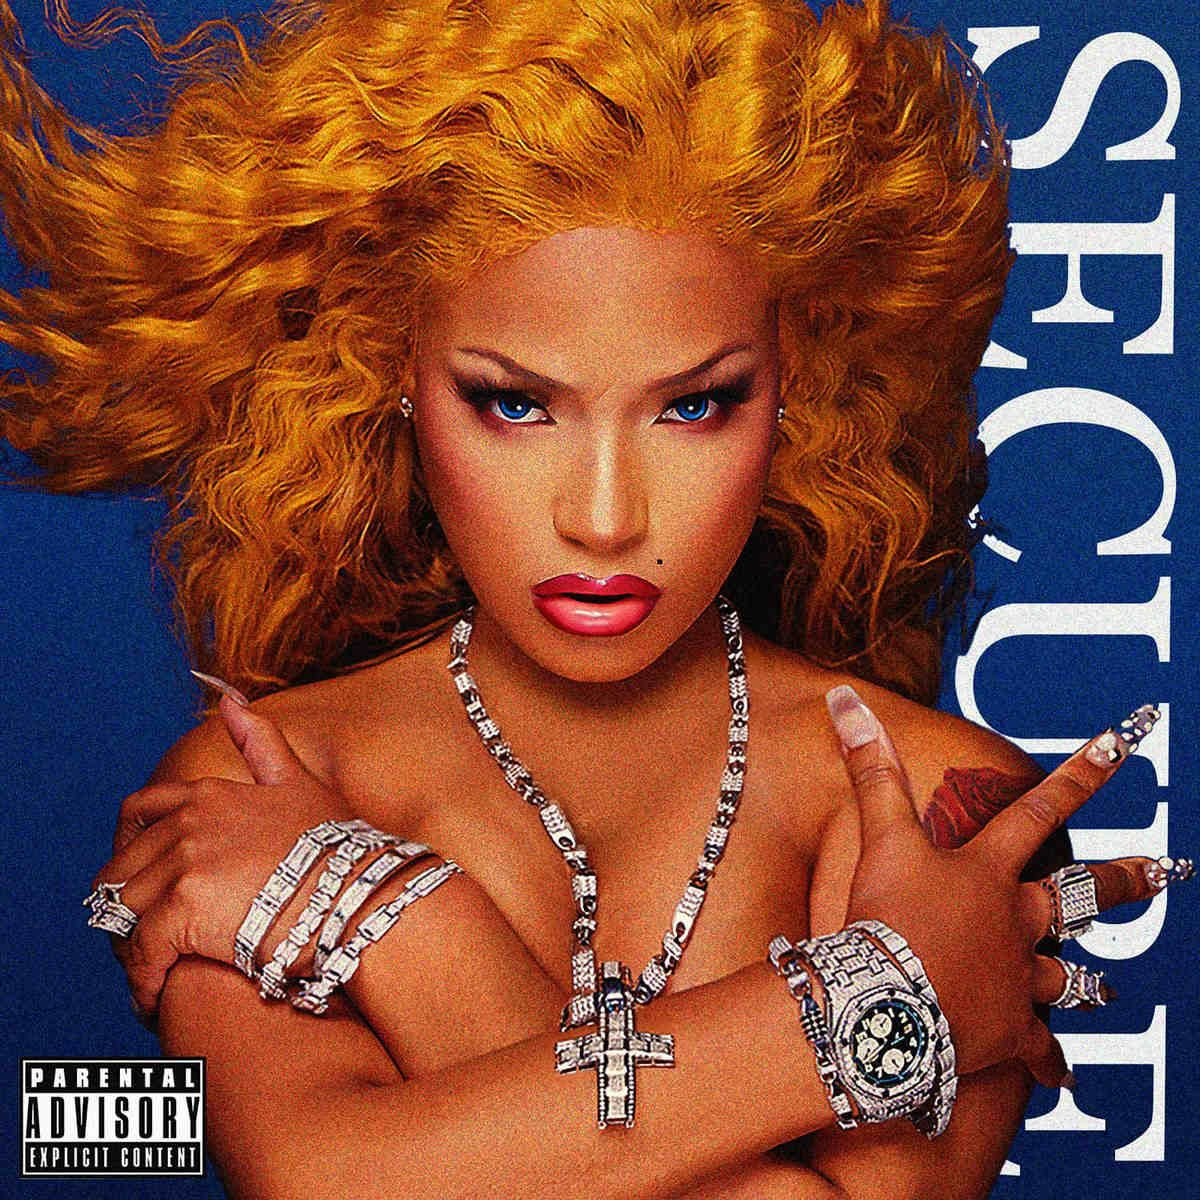 Stefflon Don – What You Want (feat. Future)